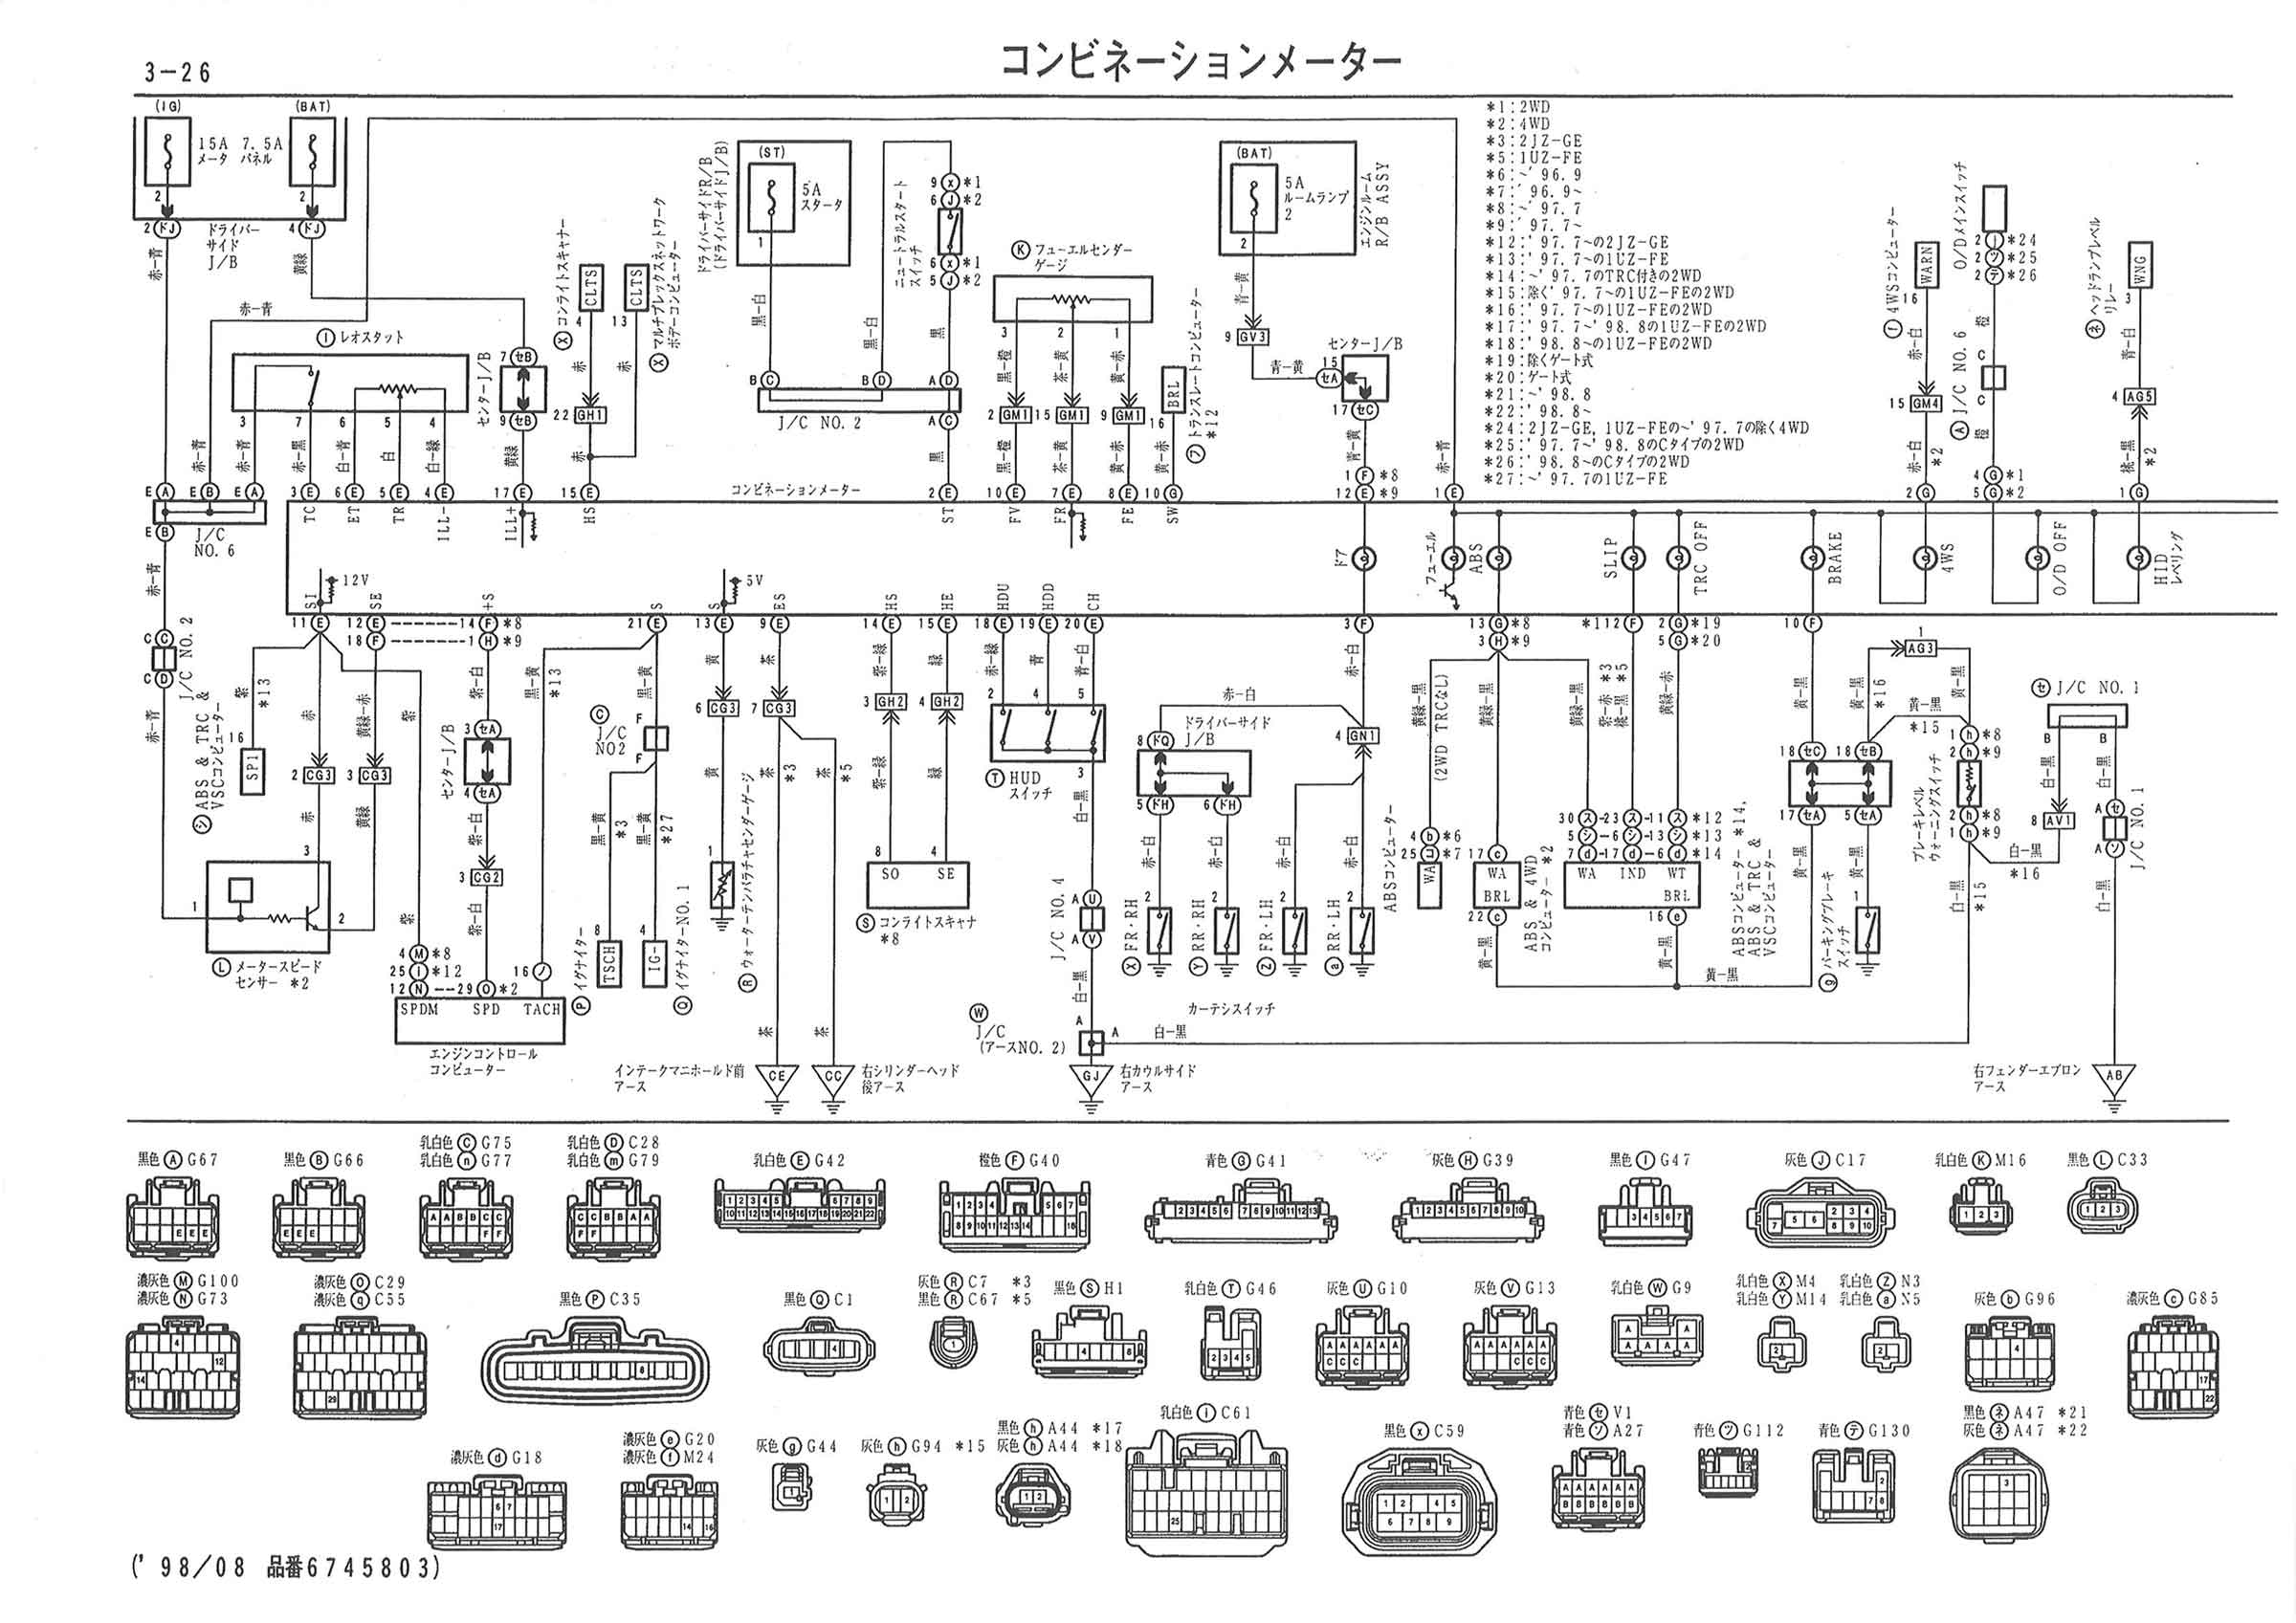 Apexi Safc Wiring Diagram 2jz Ge Auto Electrical Related With